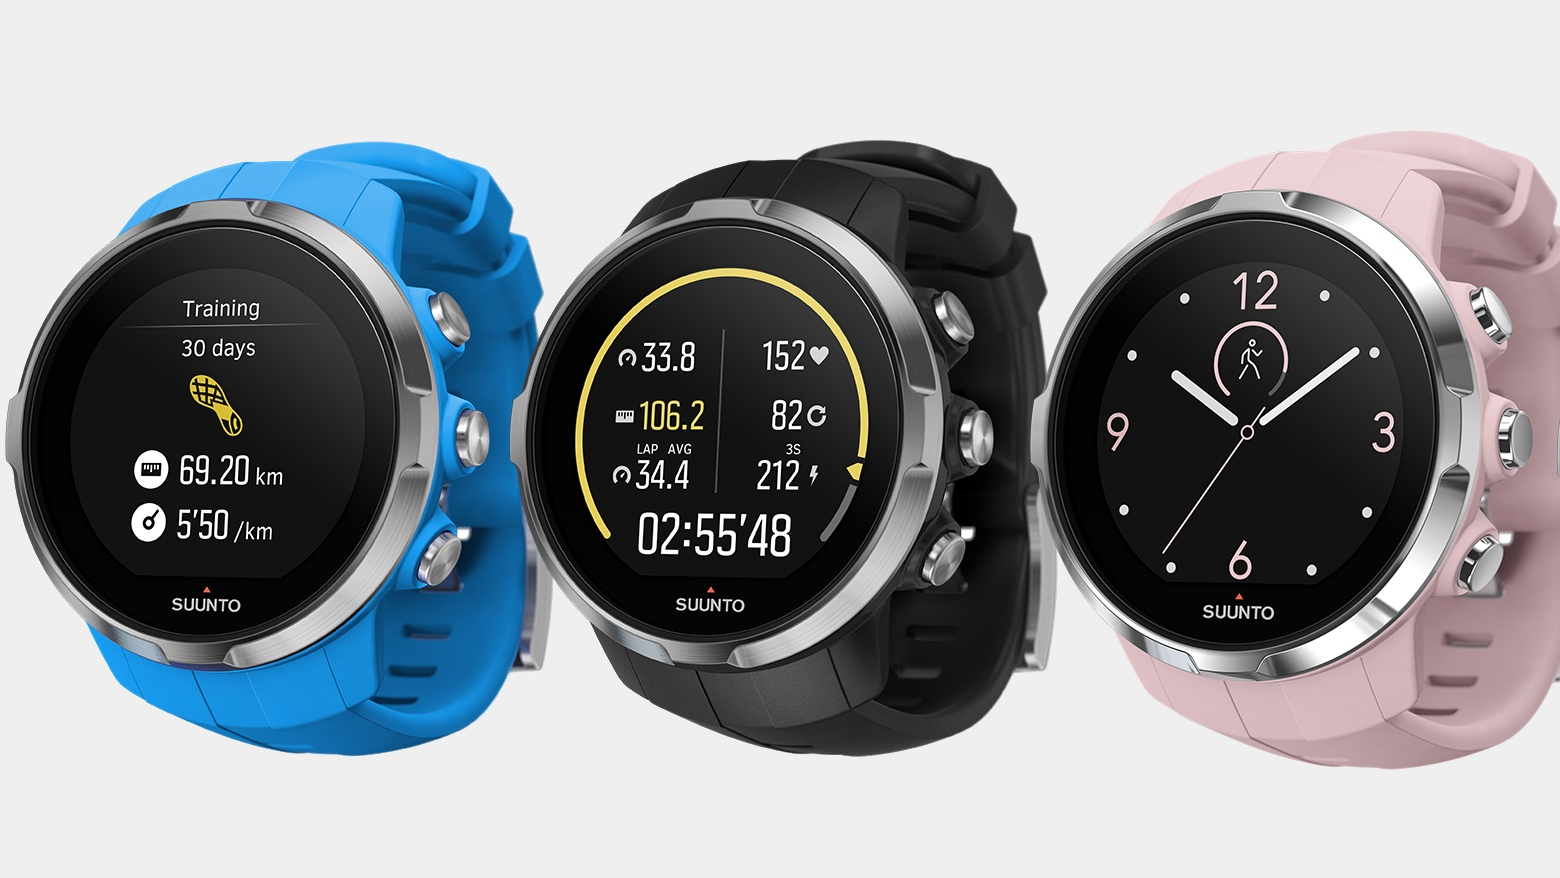 Suunto Spartan Sport GPS watch announced